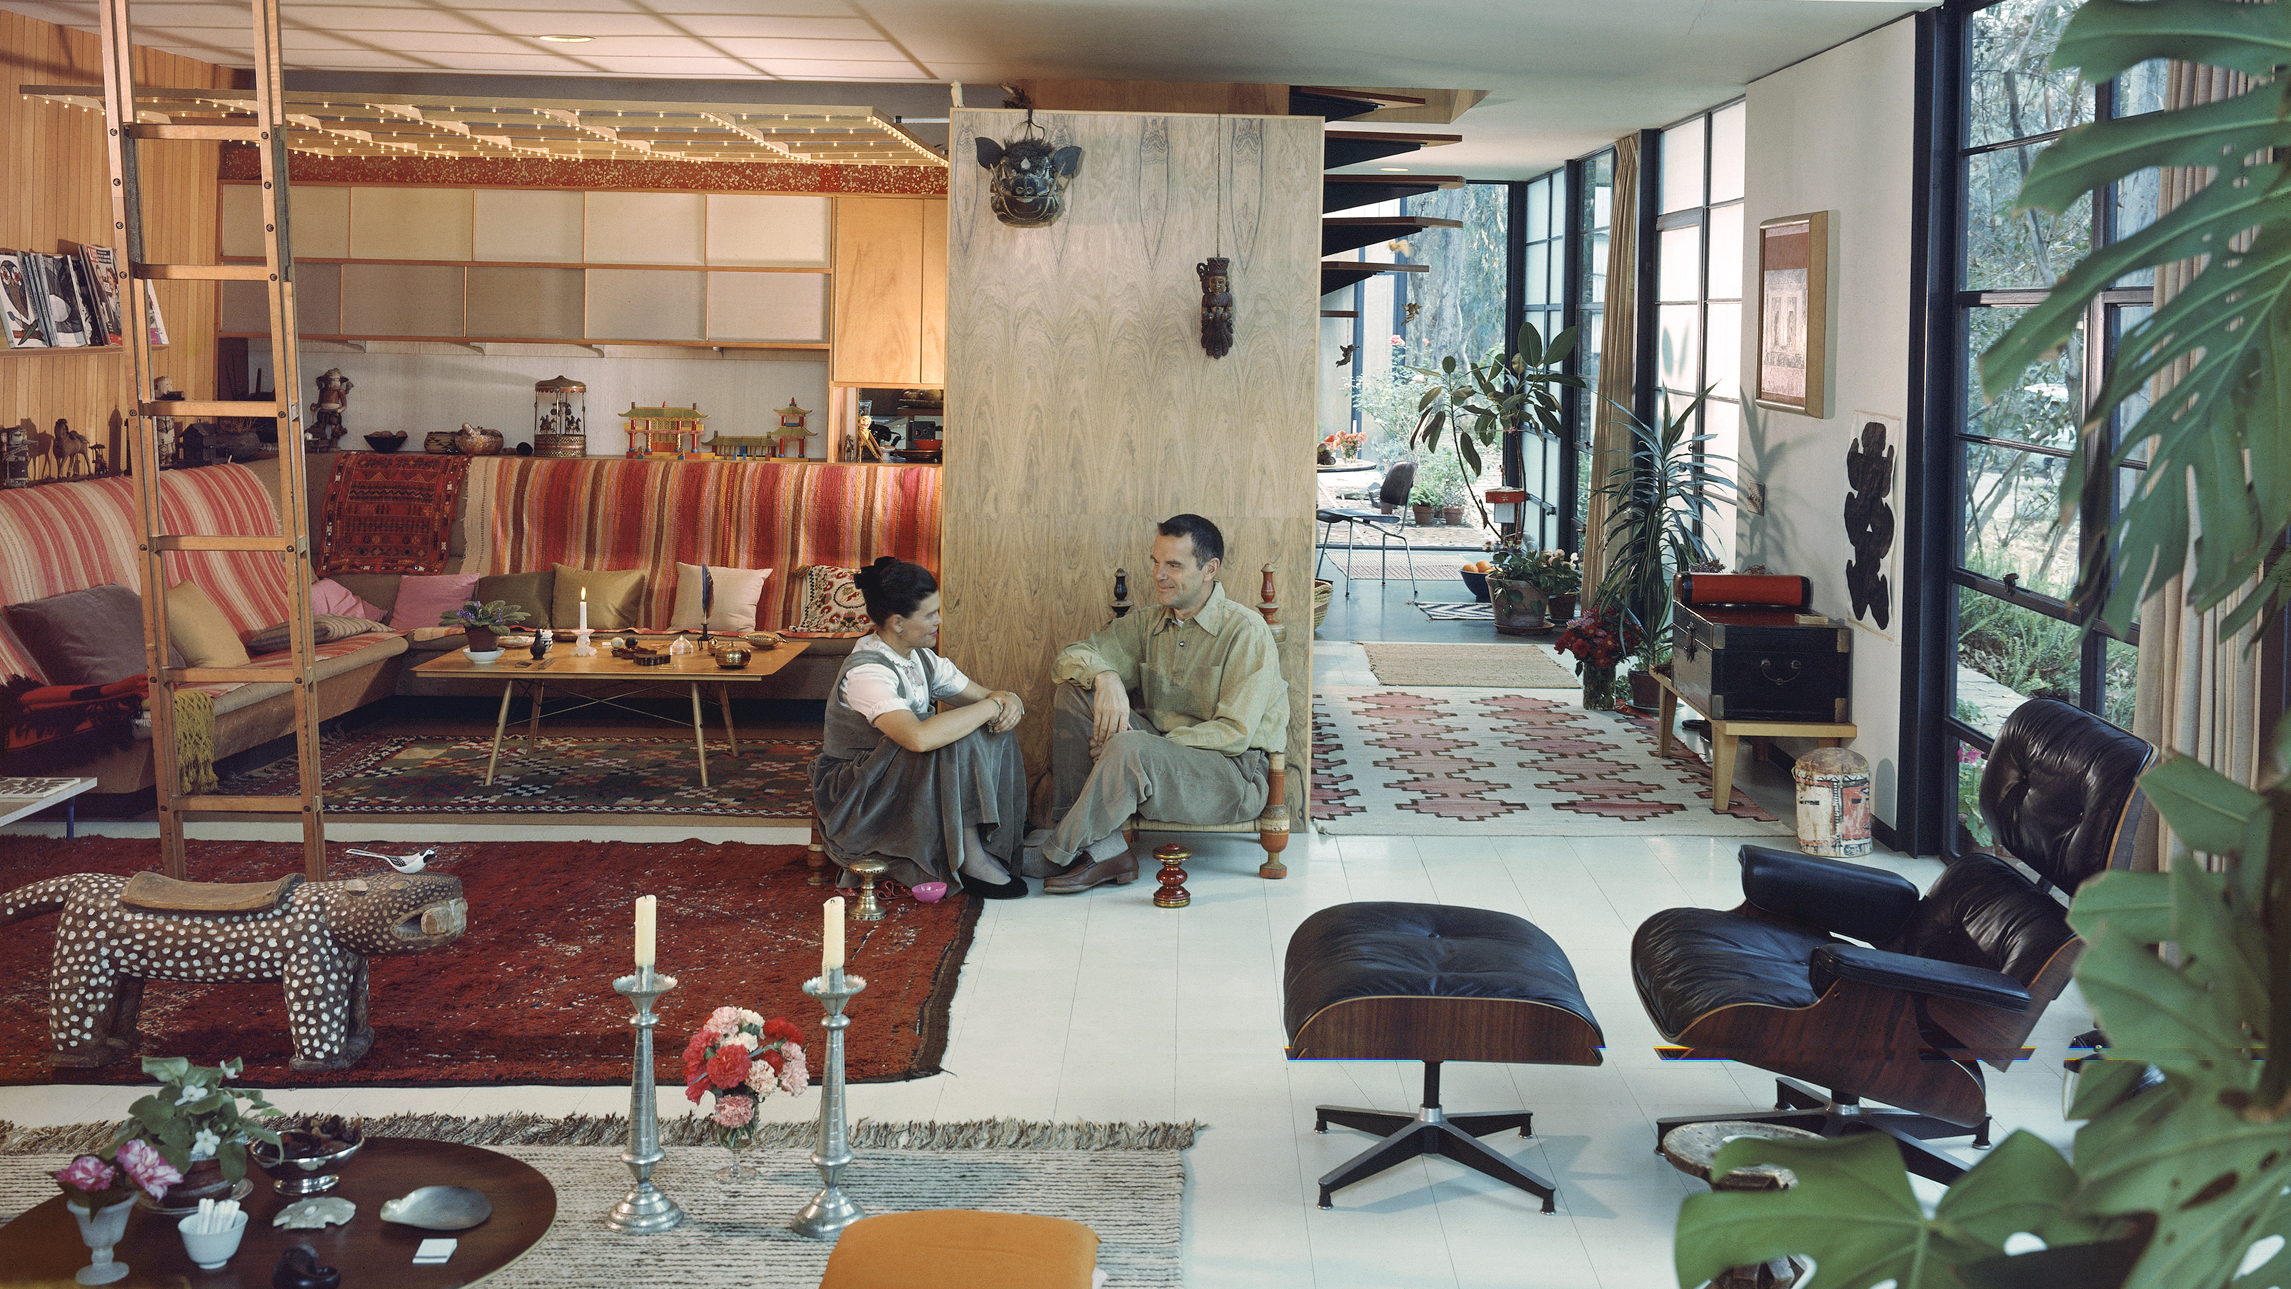 Ray And Charles Eames Charles And Ray Eames Made Life Better By Design Their